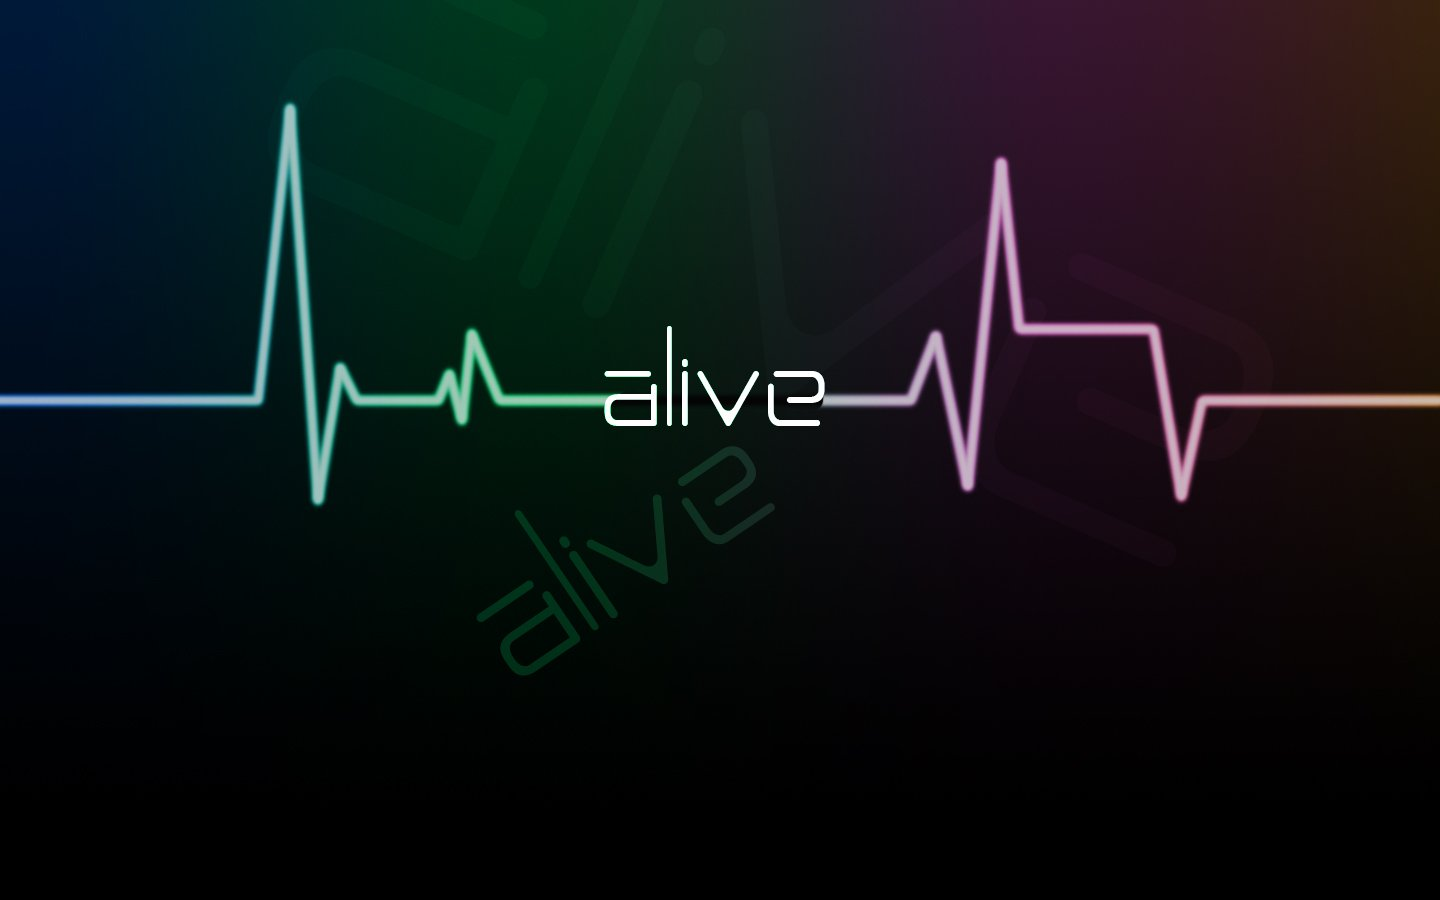 Alive Wallpaper 1440x900 Alive 1440x900